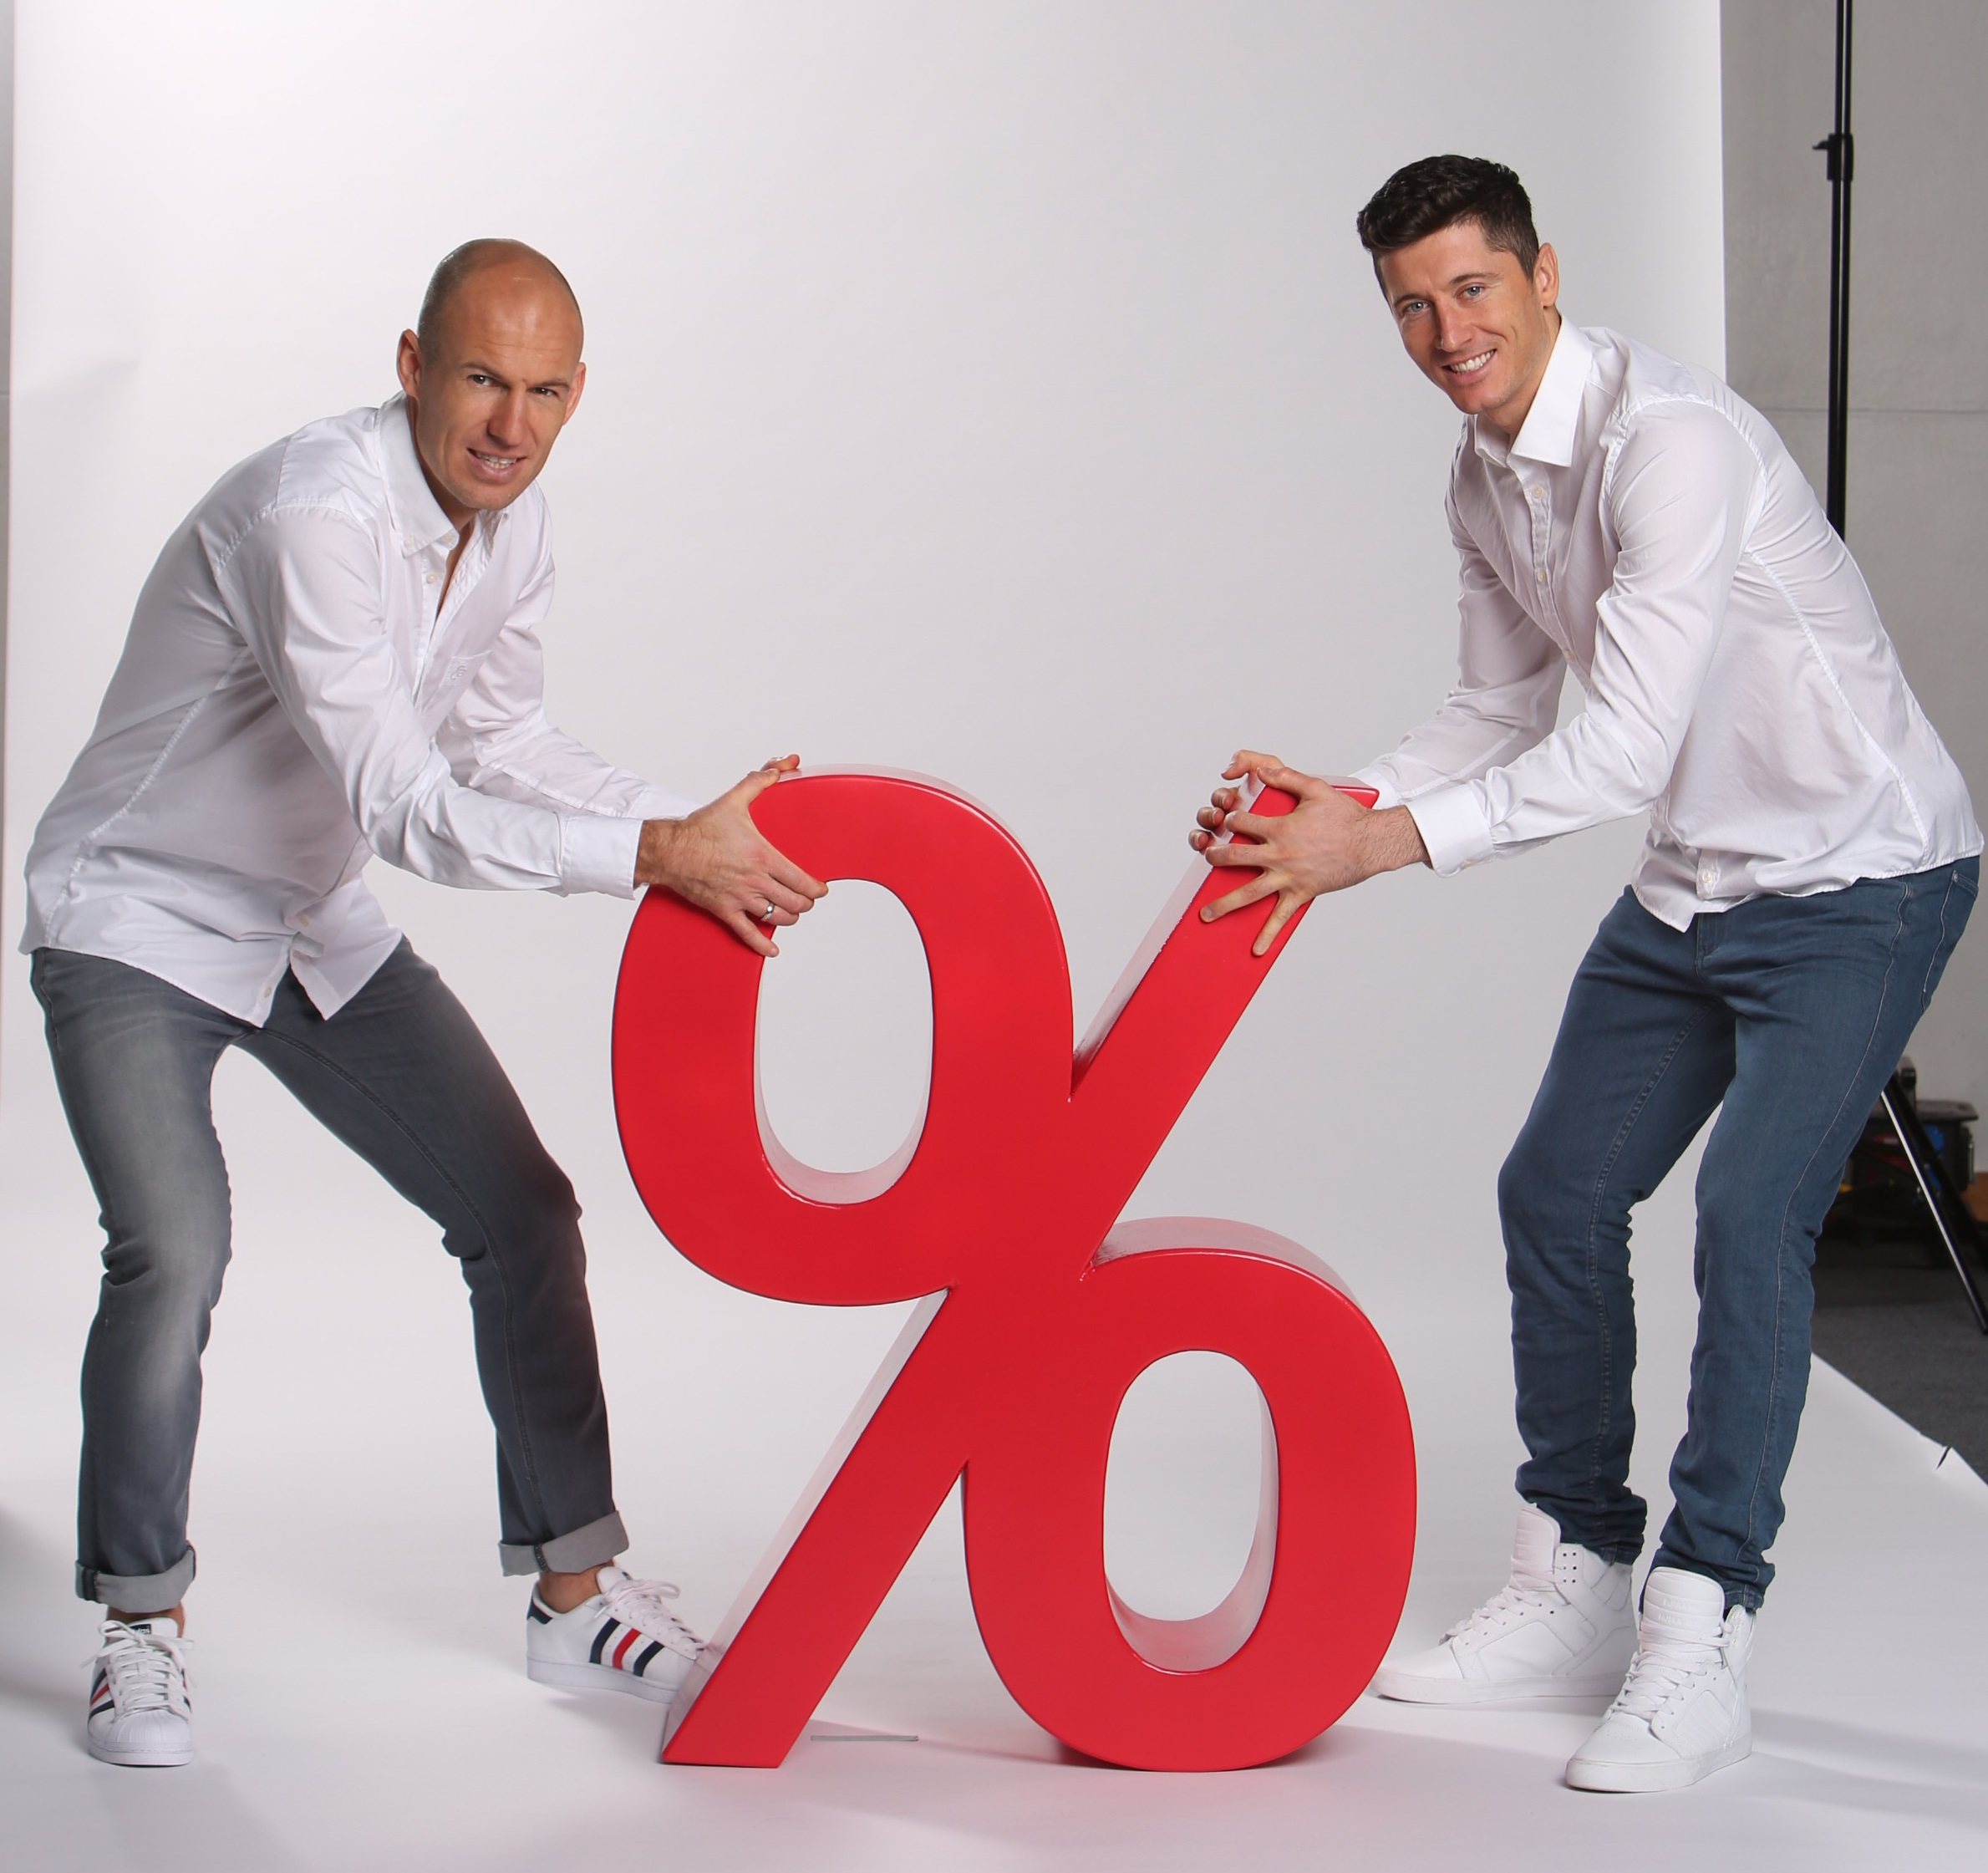 Sale-_Lewandowski_Robben_0003